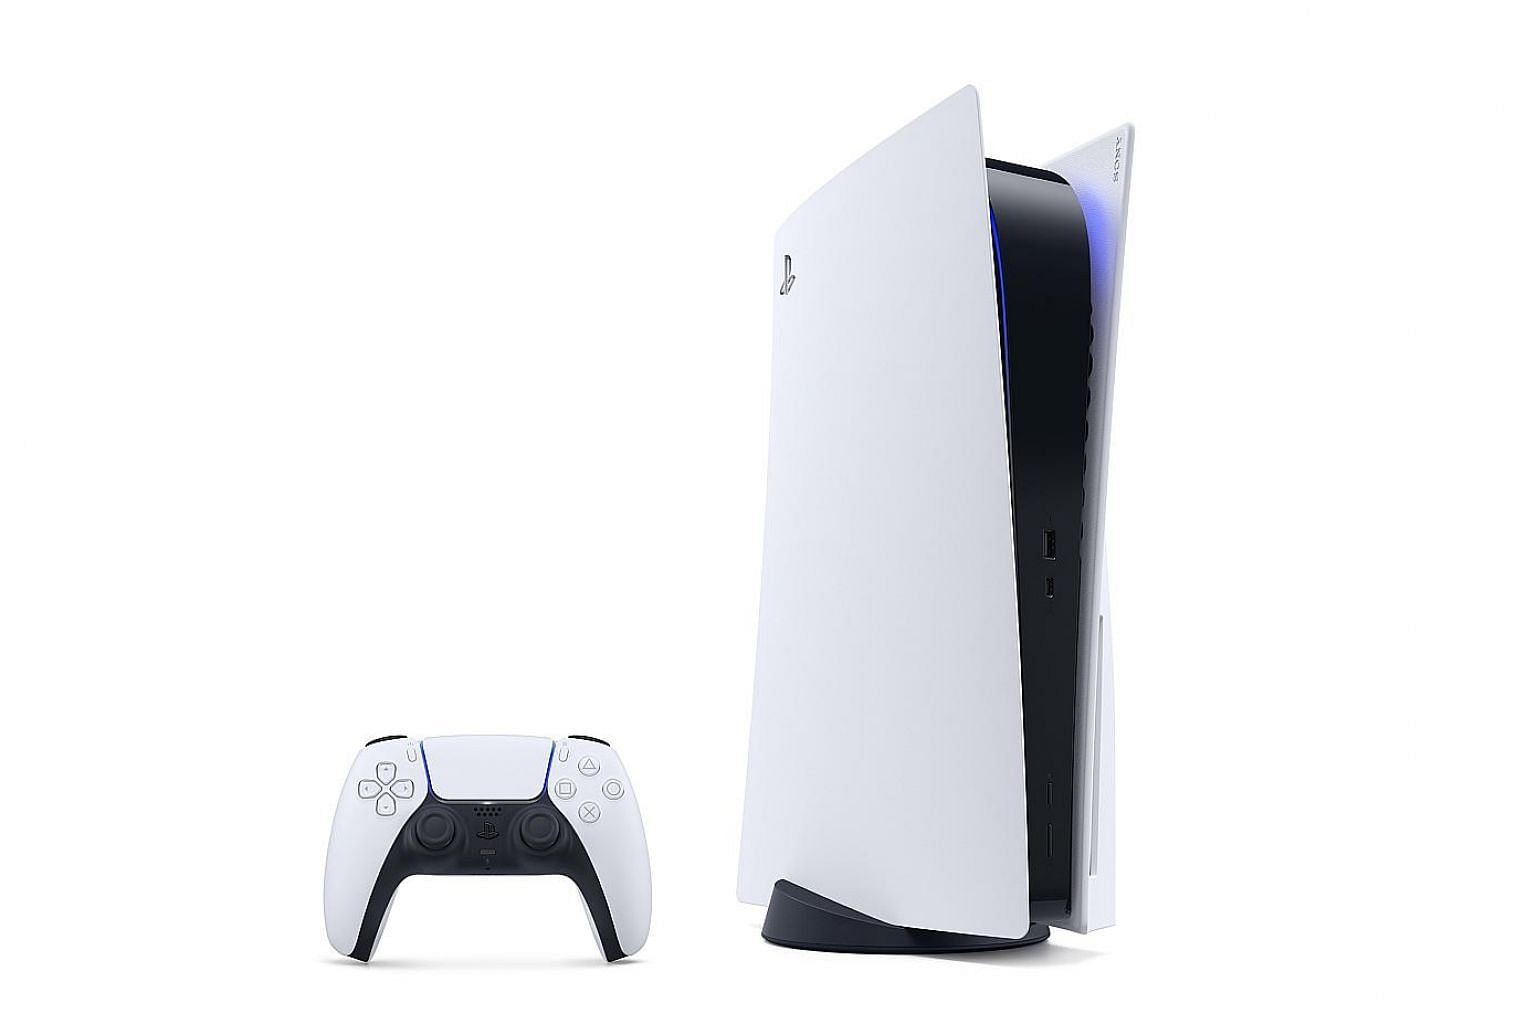 Sony's PlayStation 5 (left) will come in a standard version costing $729, as well as a digital edition without a Blu-ray disc drive costing $599. Rival Microsoft's Xbox Series X will cost $699, while the less powerful Series S will go for $459. PHOTO